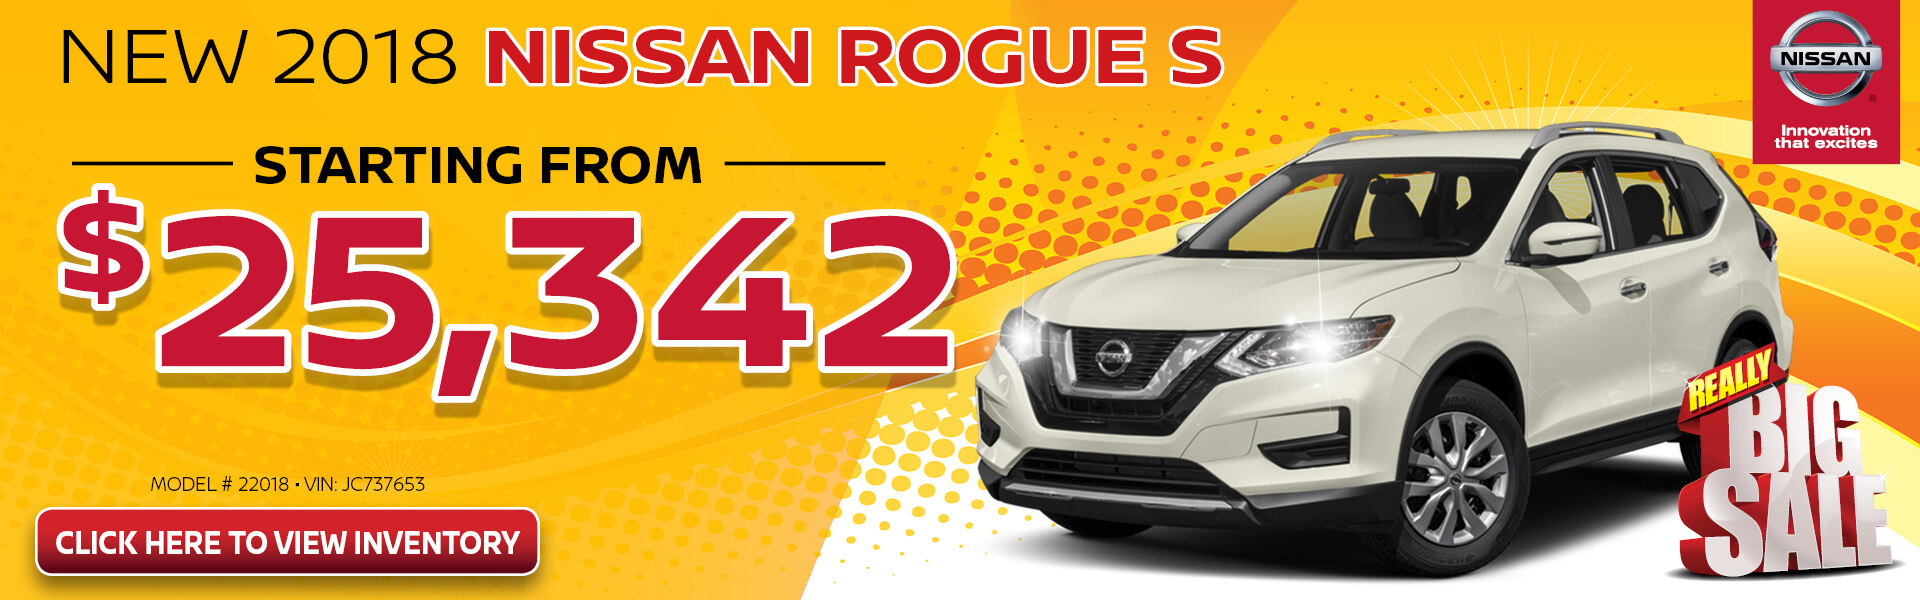 Nissan Rogue $25,342 Purchase